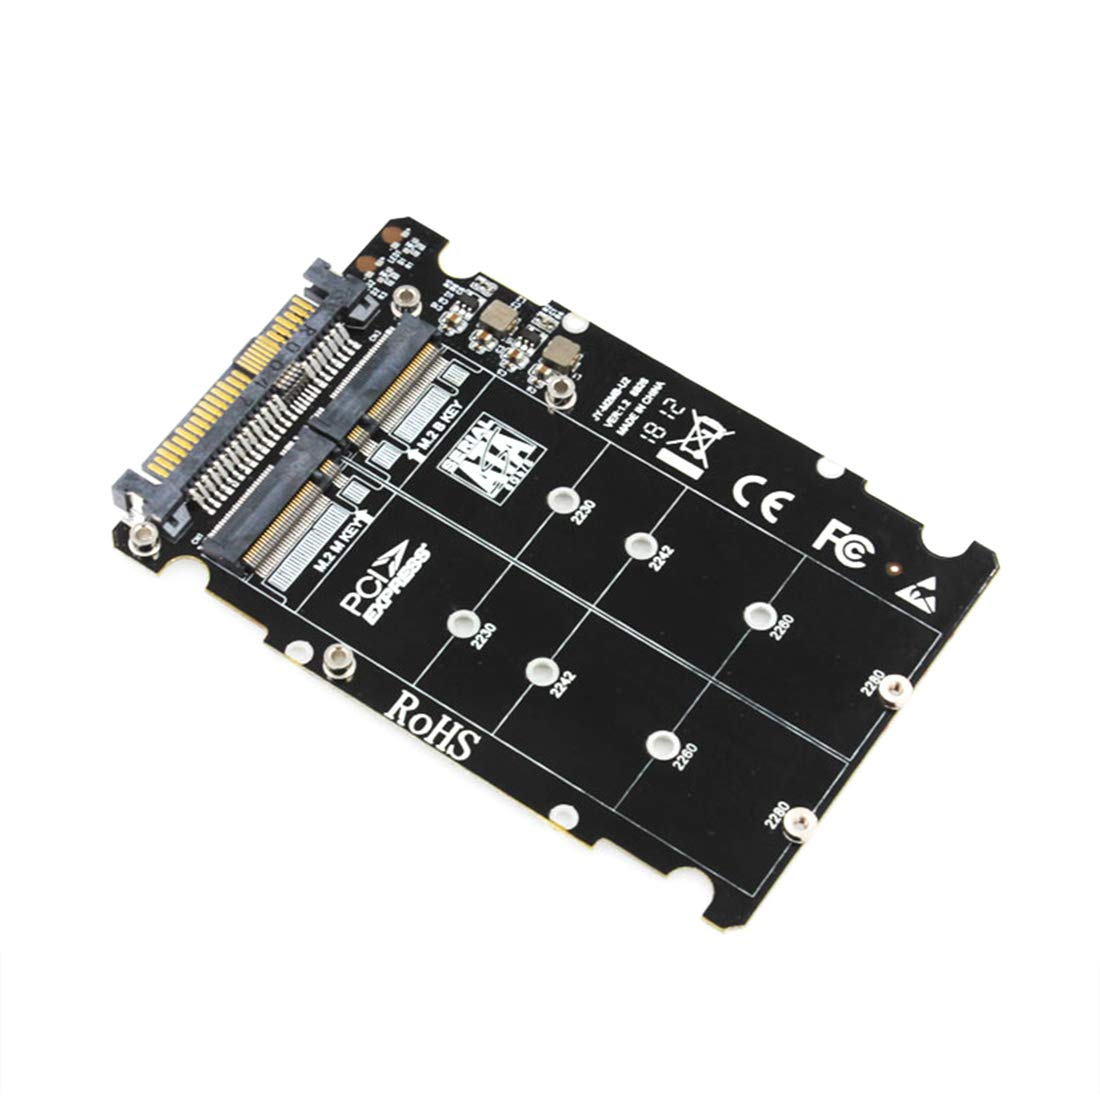 JMT NGFF M.2 SSD M Key to U.2 Adapter 2 in 1 M2 NVMe SATA-Bus to PCI-e U.2 SFF-8639 Adapter PCIe M2 Converter for Desktop PC